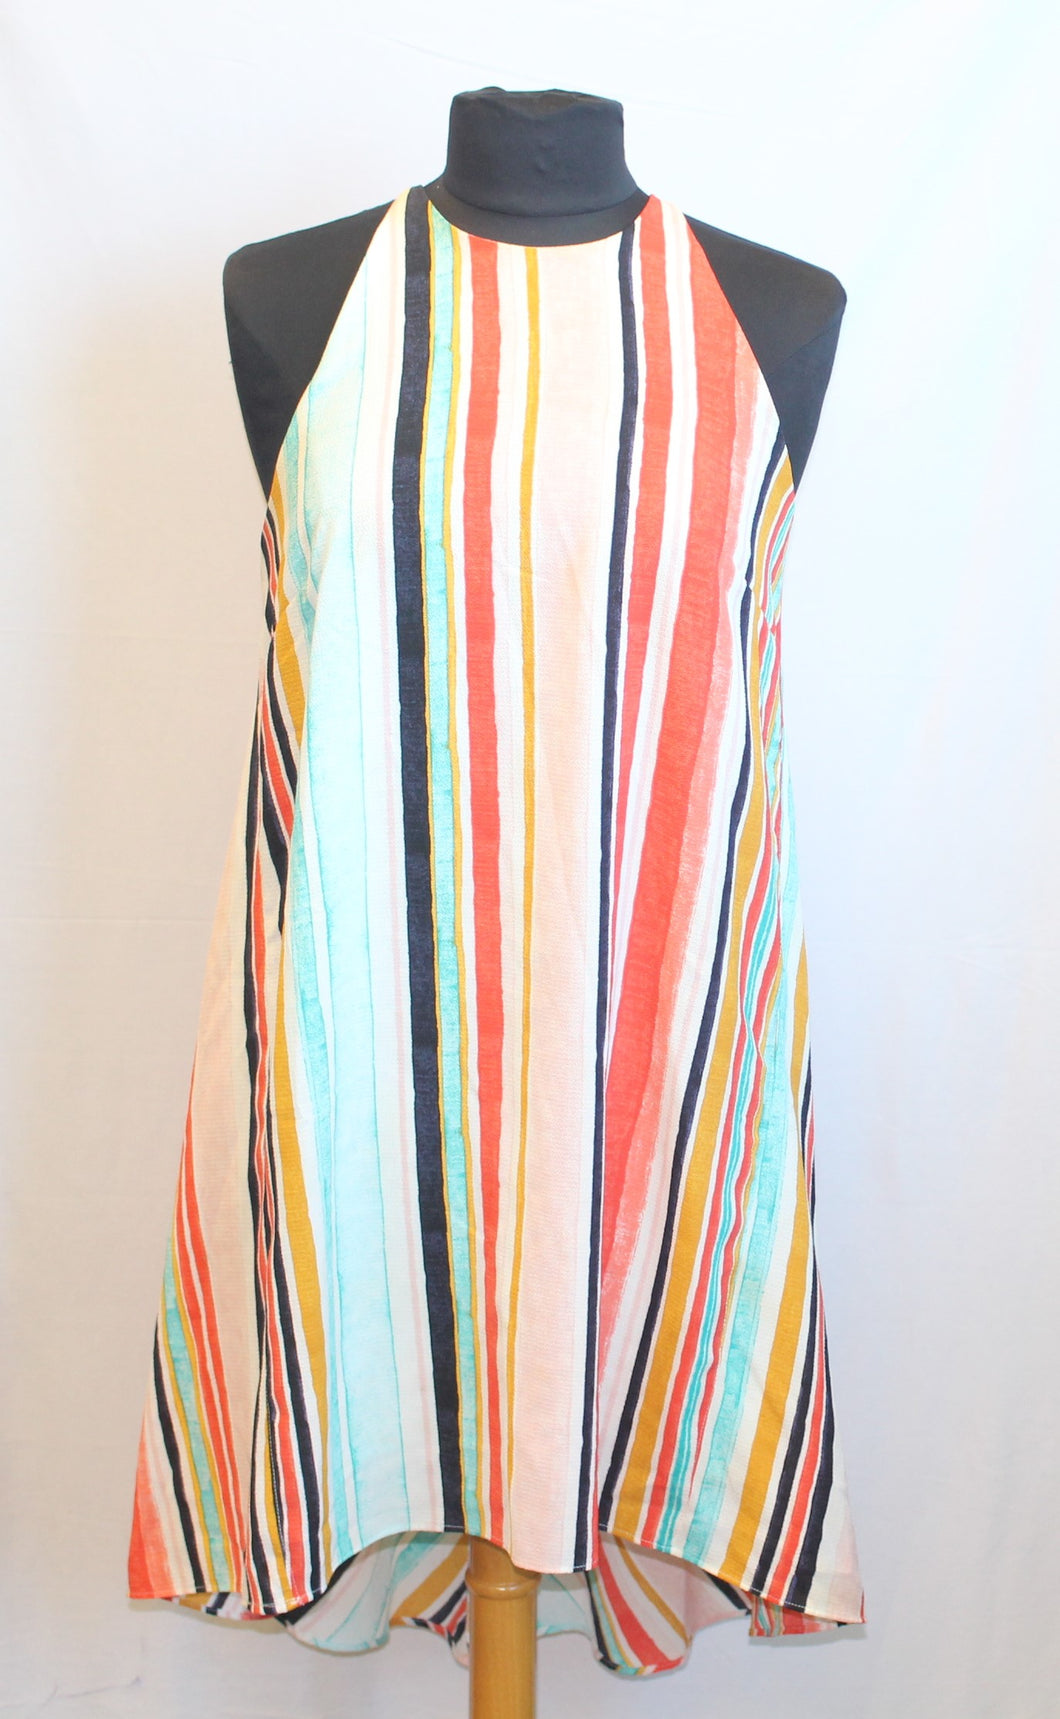 Women's multi-colored sleeveless dress            Size S                  4/7A